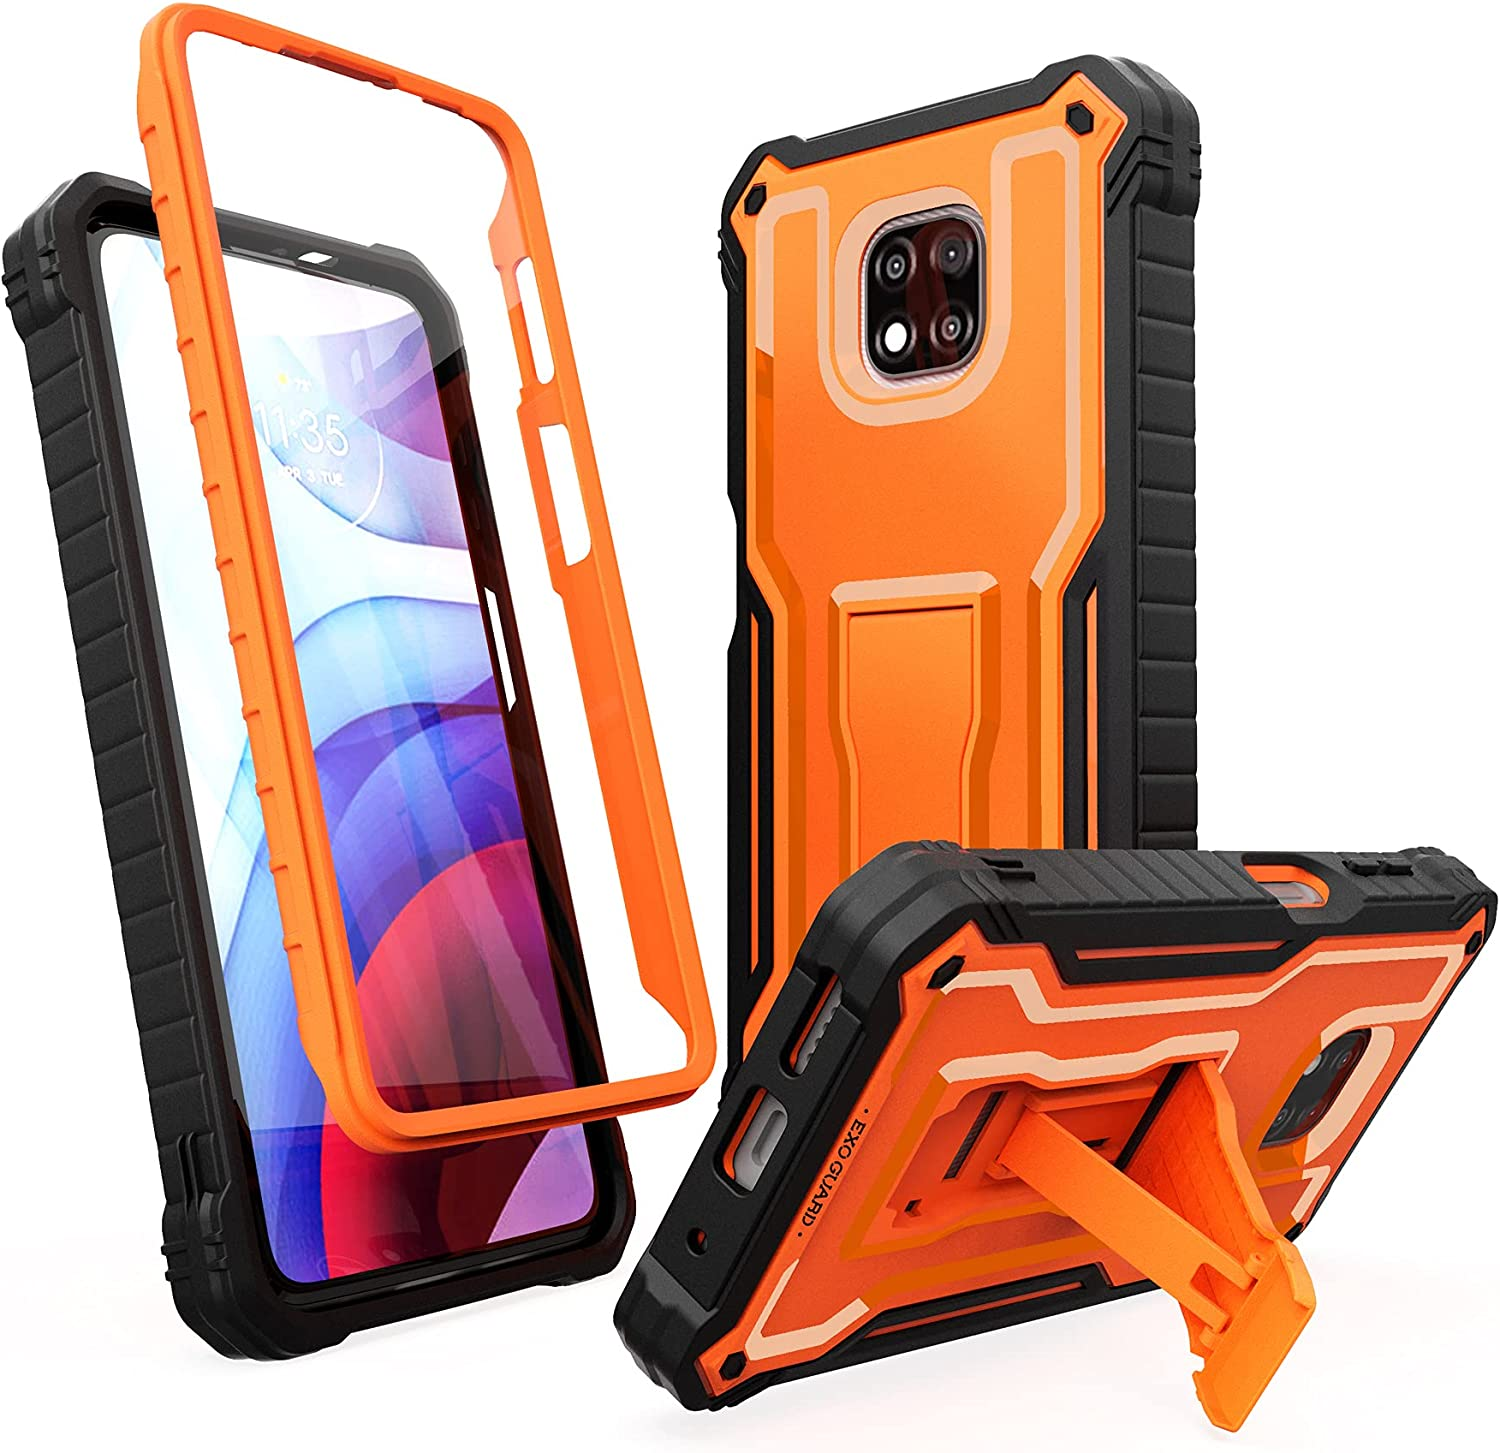 ExoGuard for MotoGPower 2021 Case, Rubber Shockproof Full-Body Cover Case Built-in Screen Protector and Kickstand Compatible with MotoGPower 2021 Phone (Orange)